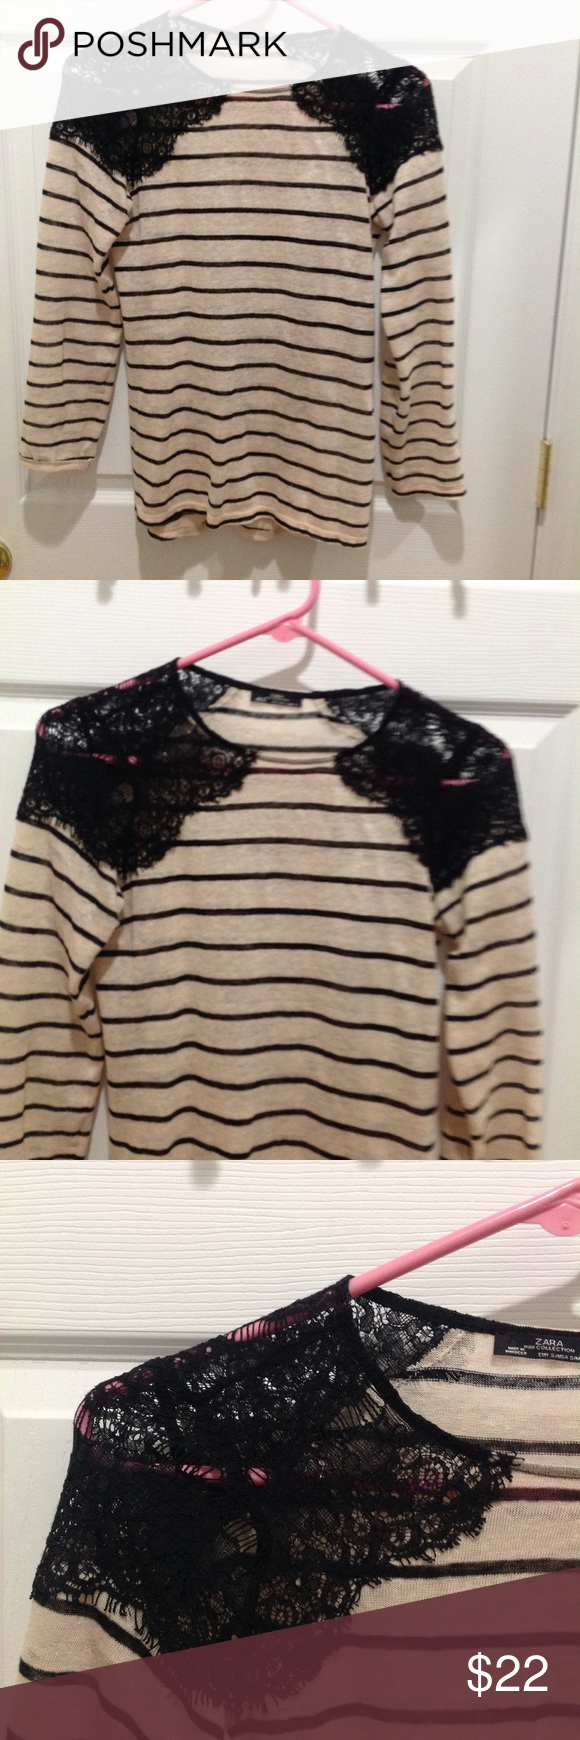 Zara lace detail Striped T-shirt, Size Small. Zara lace detail Striped T-shirt, Size Small. Zara Tops Tees - Long Sleeve